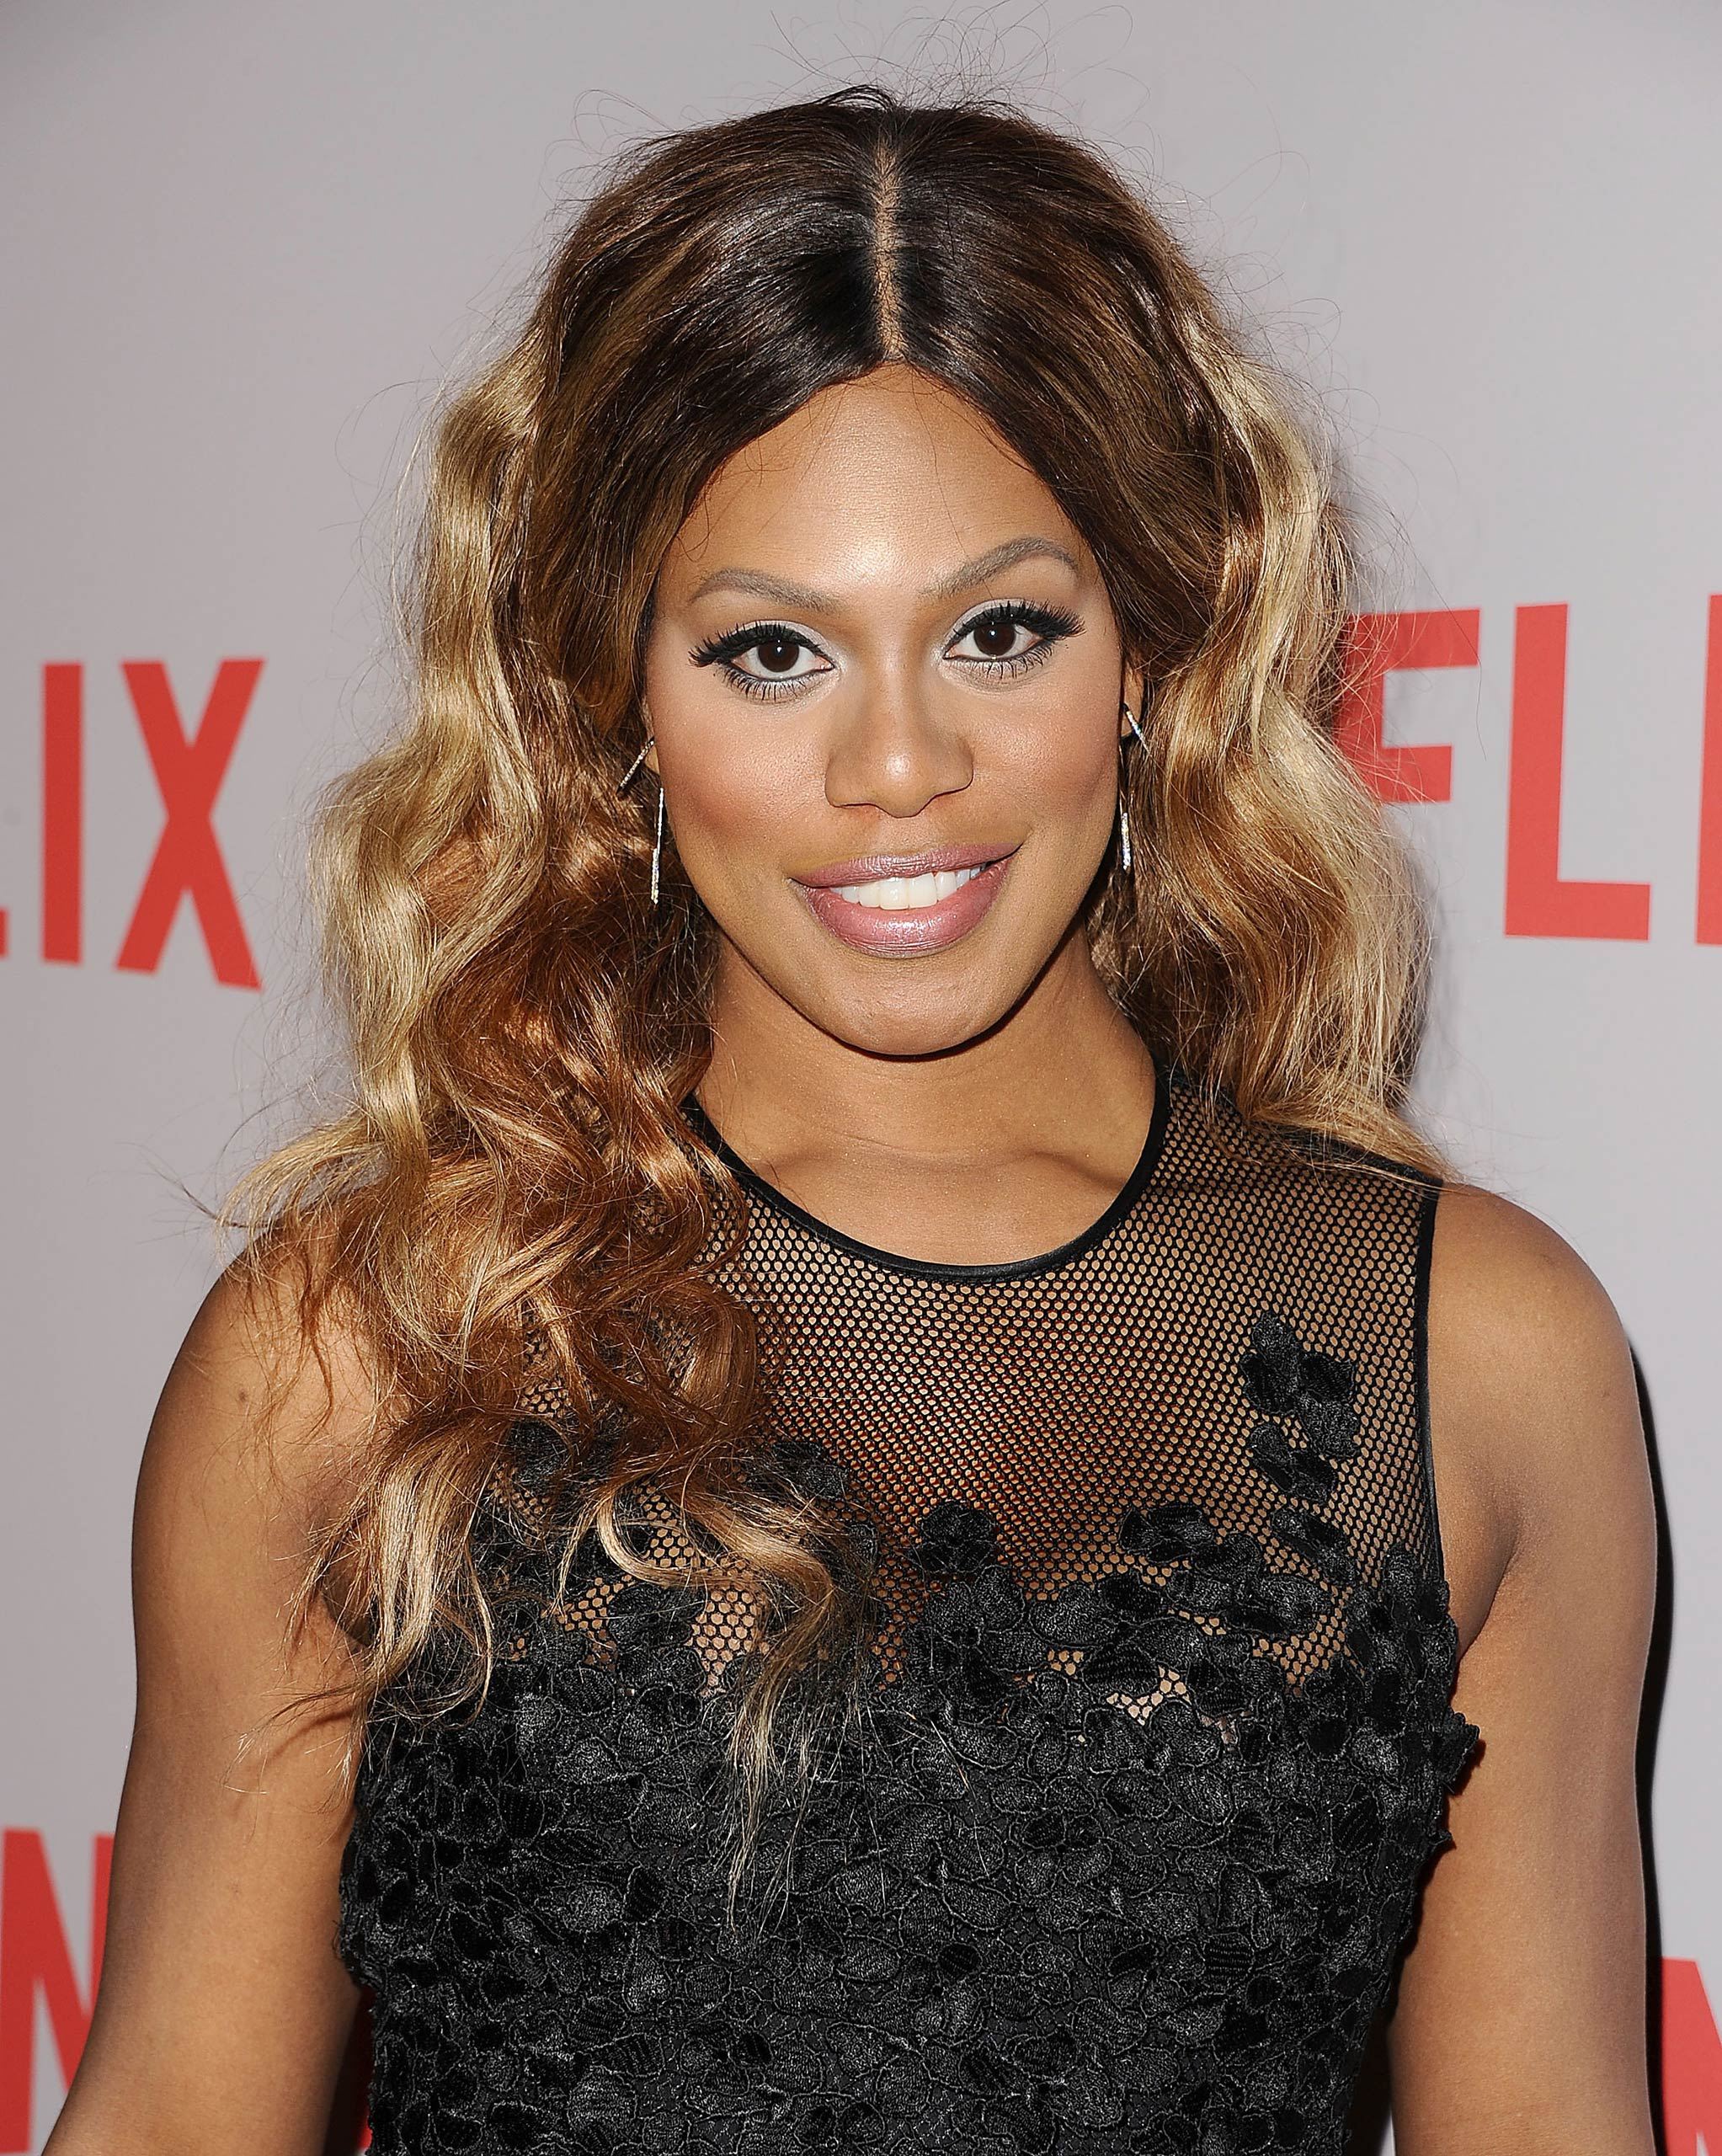 Laverne Cox attends Netflix's Orange Is The New Black screening and Q&A at the Directors Guild Of America on May 20, 2015 in Los Angeles.